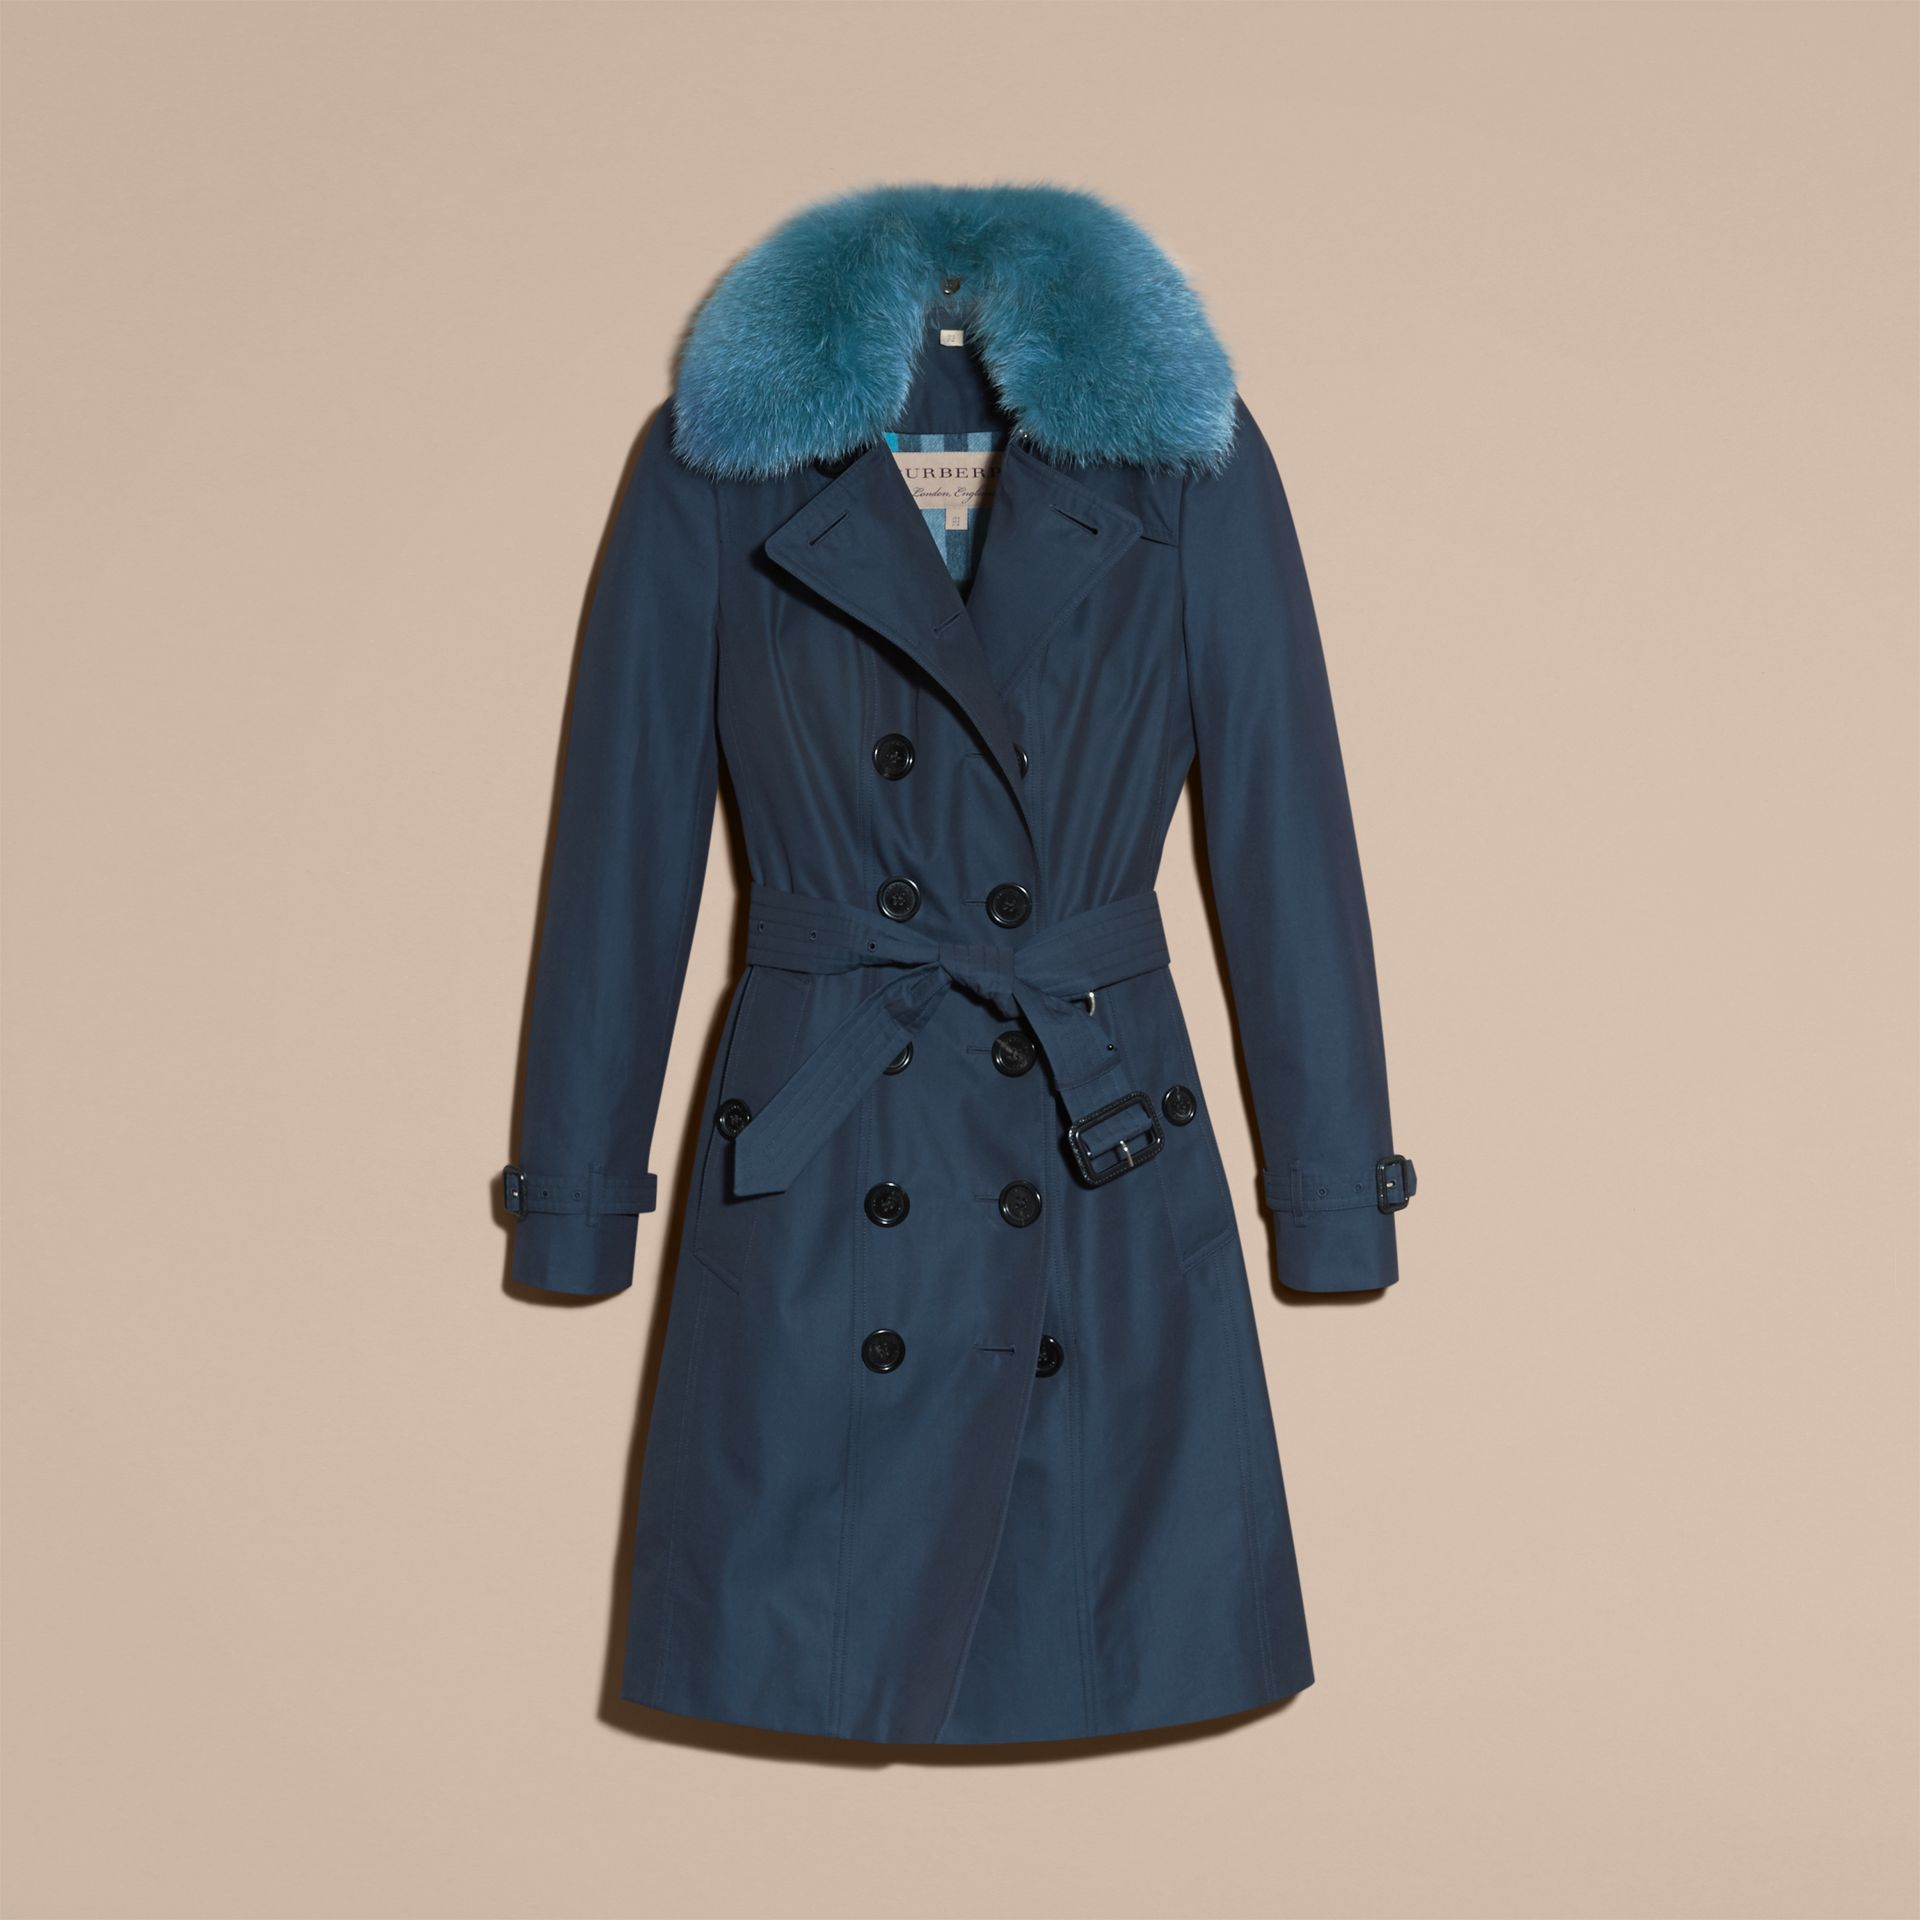 Teal blue Cotton Gabardine Trench Coat with Detachable Fur Collar and Warmer Teal Blue - gallery image 4